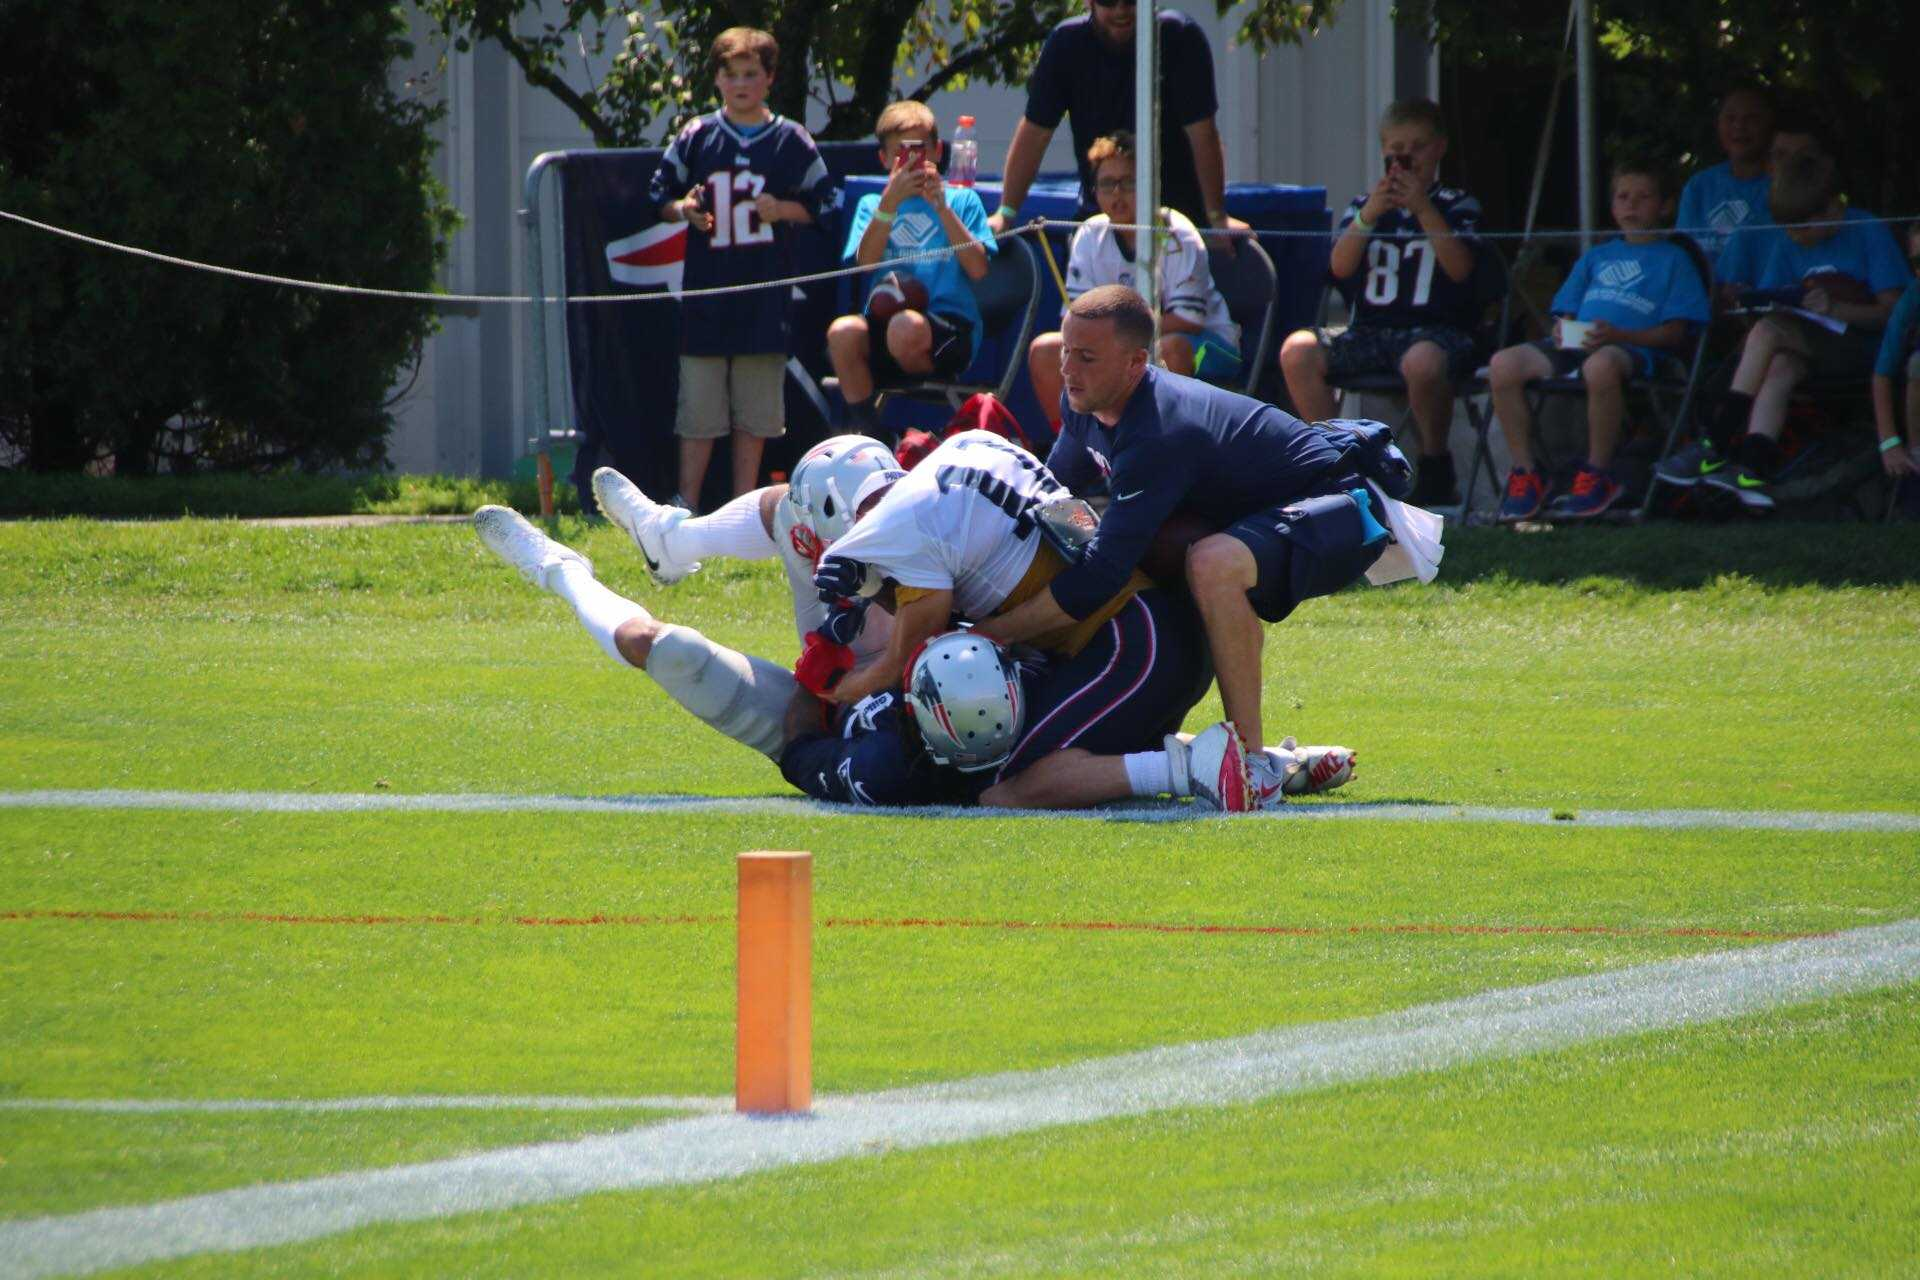 Julian Edelman, Stephon Gilmore Get Into Scuffle At Patriots' Practice